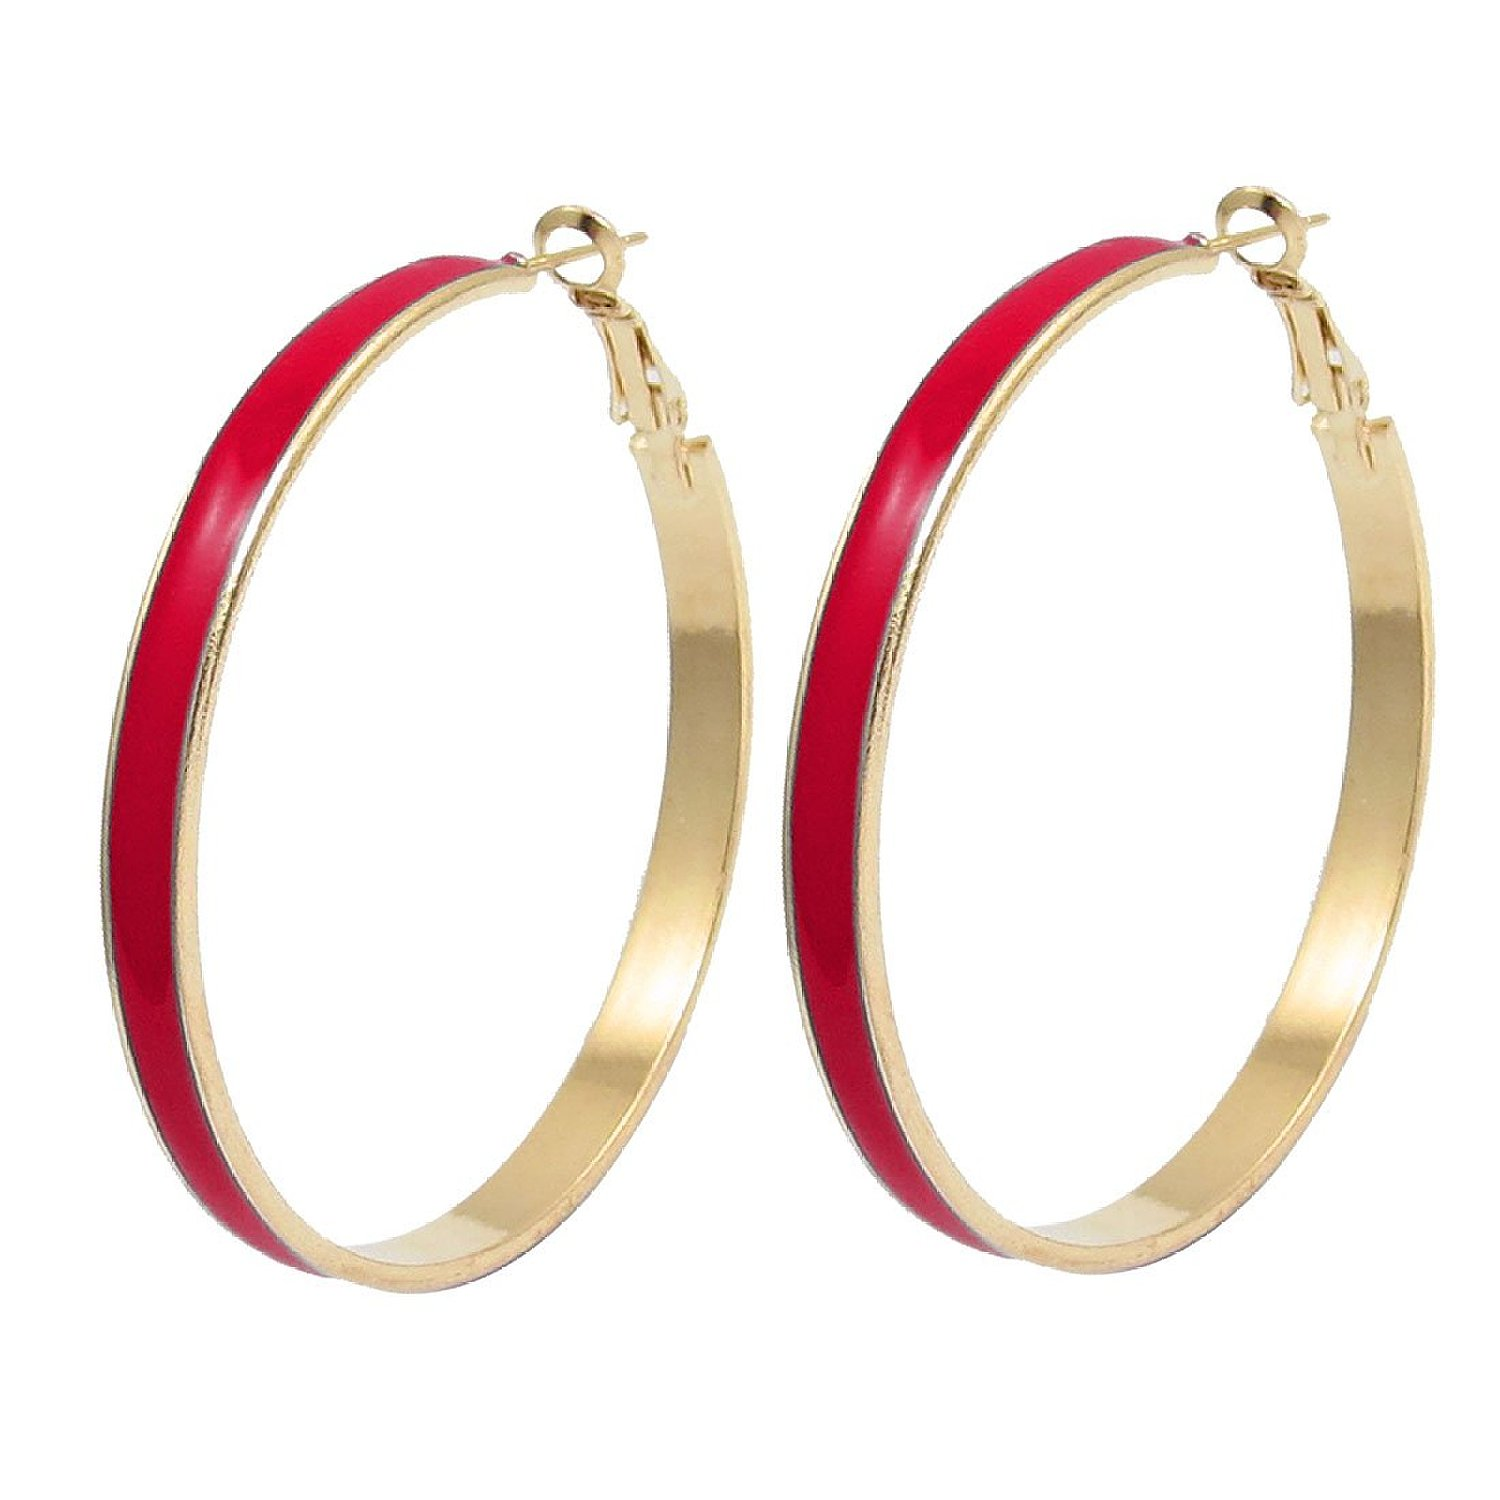 "2"" Dia Pair Red Gold Tone Plastic Cover Round Hoop"